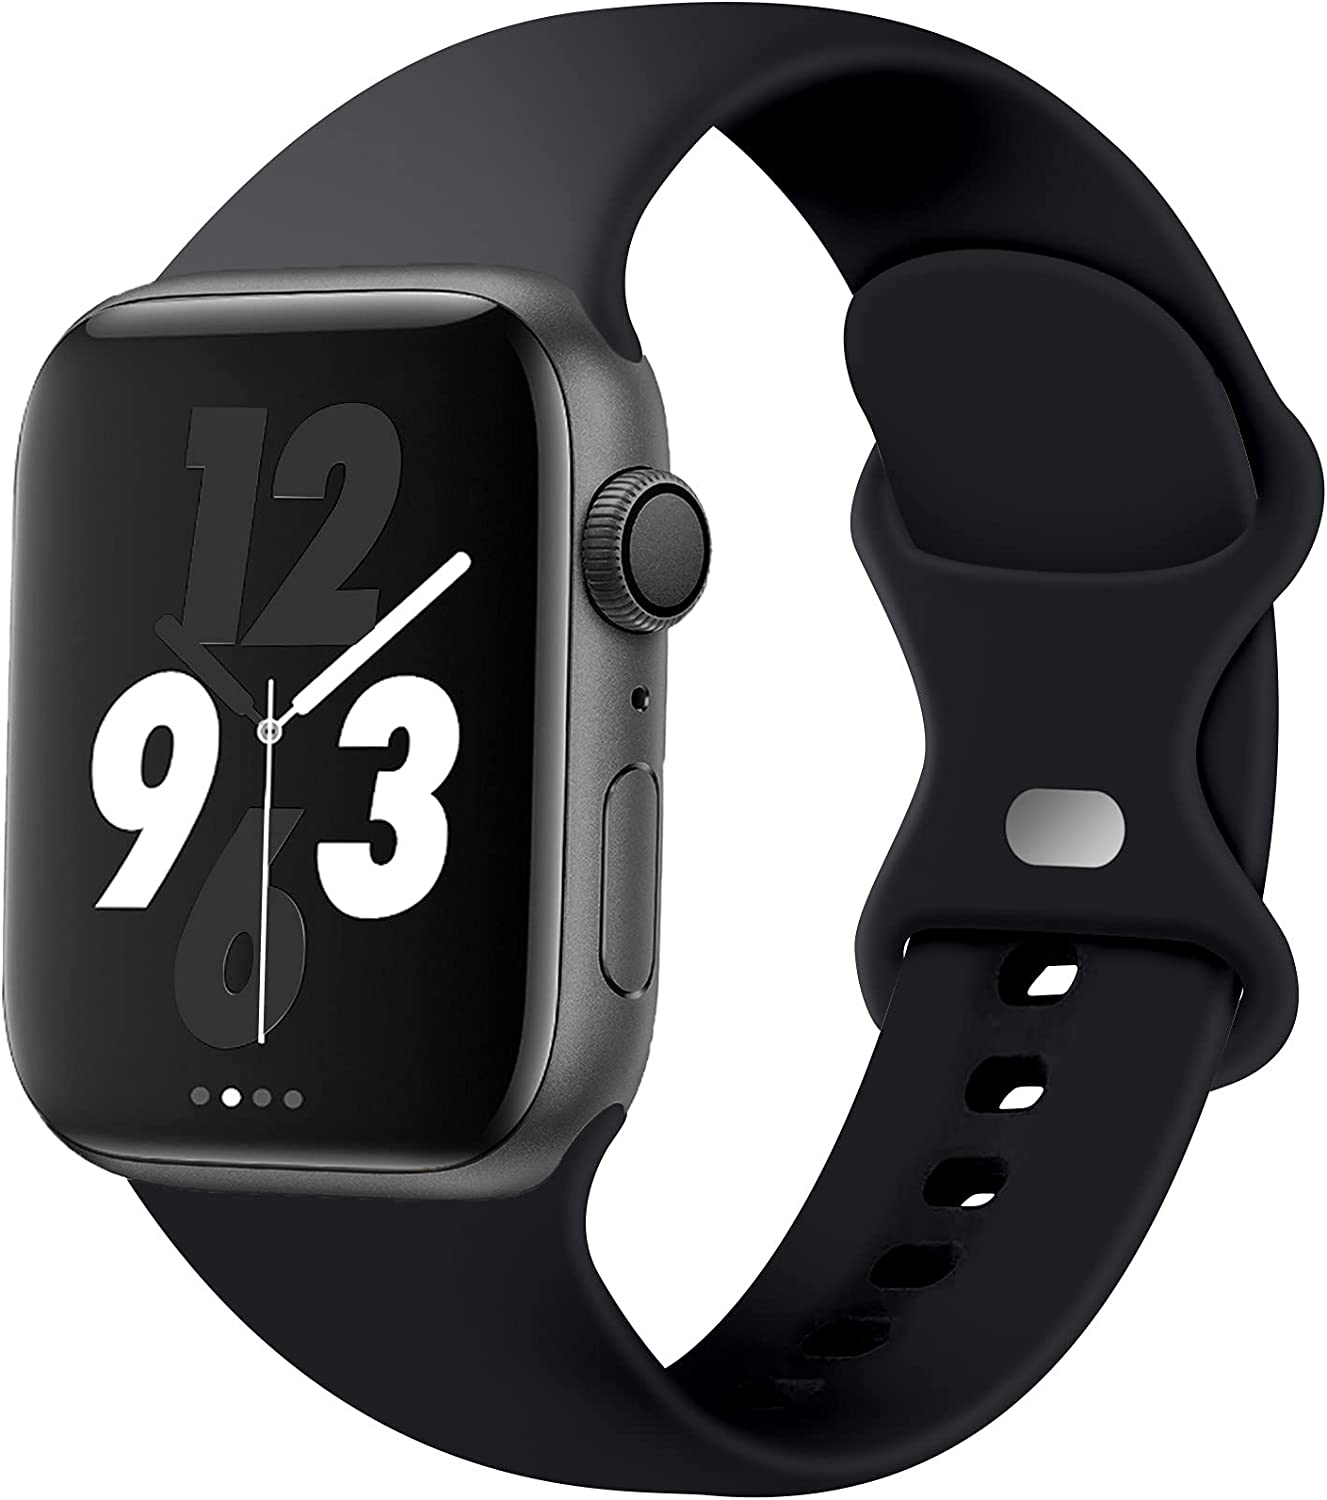 Acrbiutu Bands Compatible with Apple Watch 38mm 40mm 42mm 44mm, Replacement Soft Silicone Sport Strap for iWatch SE Series 6/5/4/3/2/1 Women Men, Black 38mm/40mm M/L